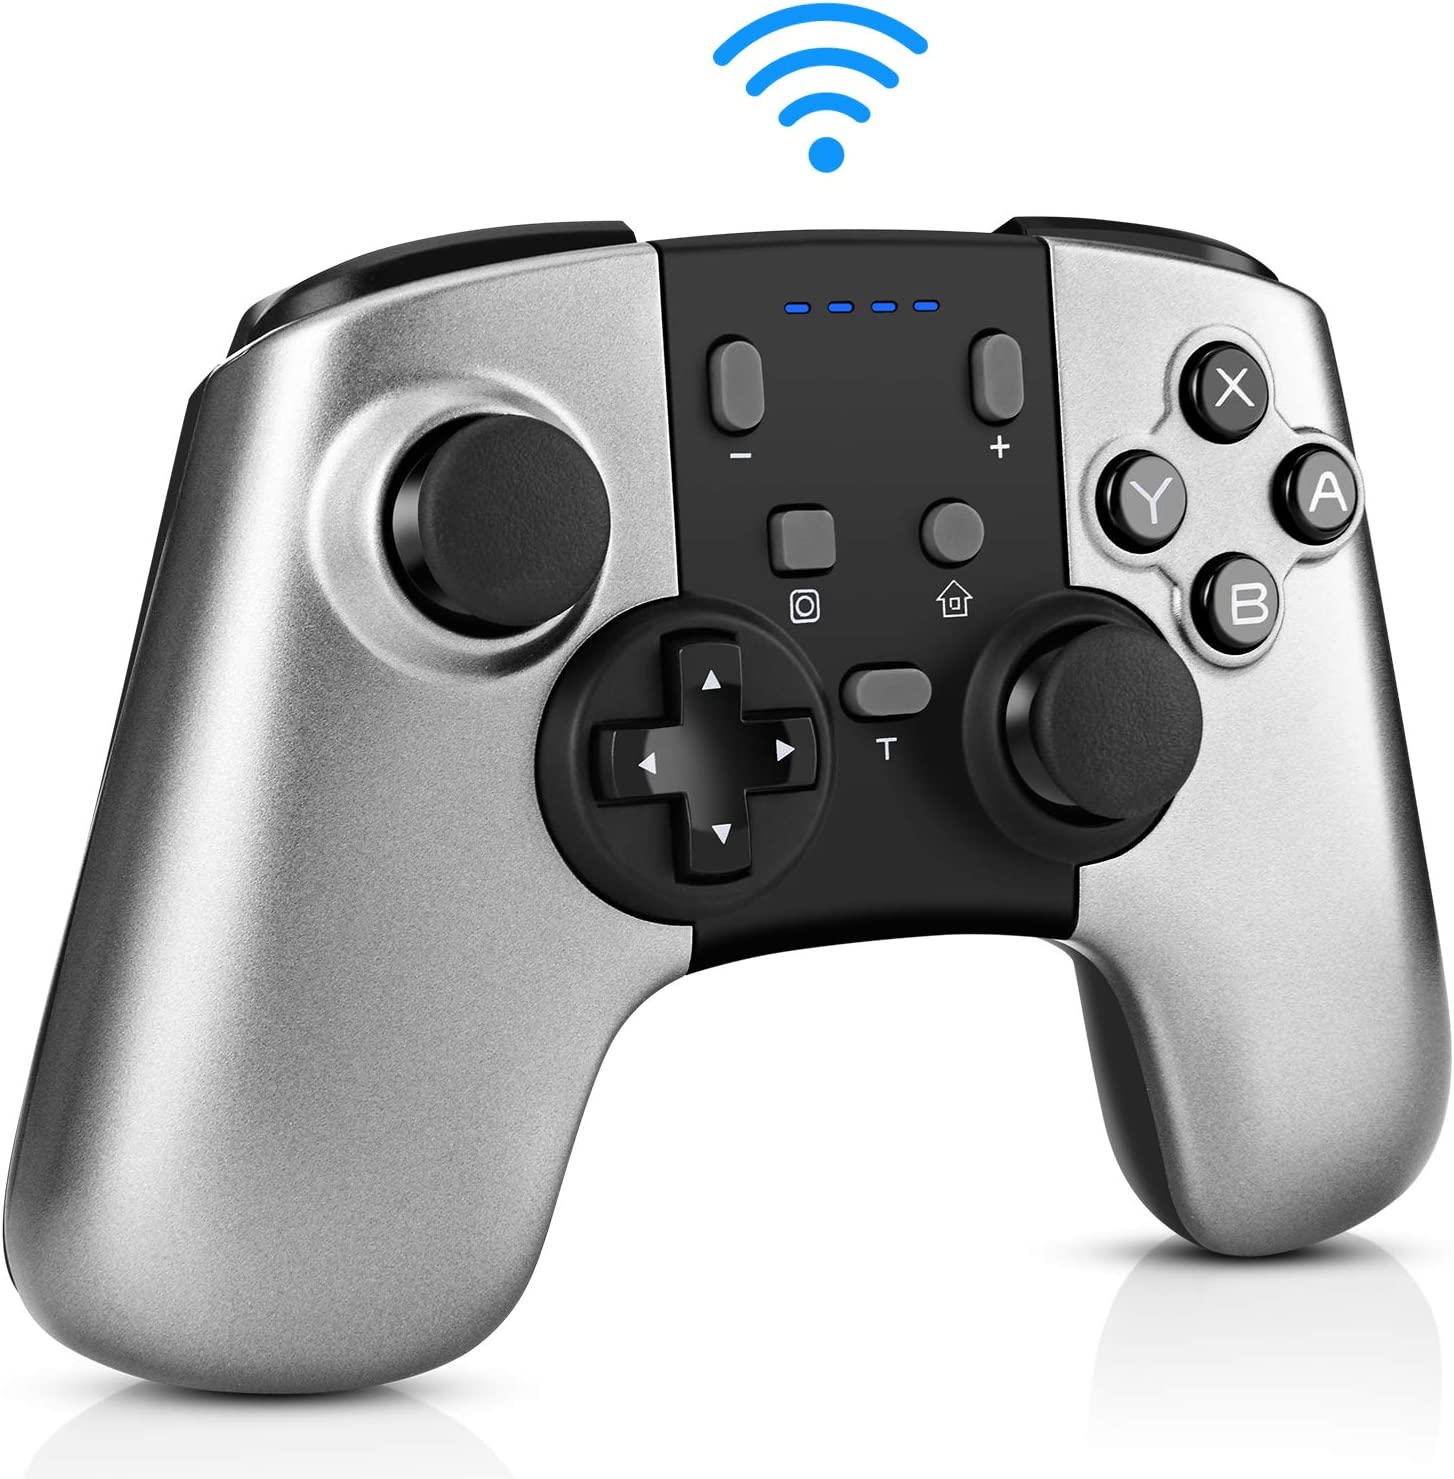 YHT Wireless Pro Controller for Nintendo Switch/Switch Lite,Remote Switch Pro Controller Gamepad for Nintendo Switch Console with 6-Axis Gyro Motion Control,Turbo Function and 3 Level Vibrations